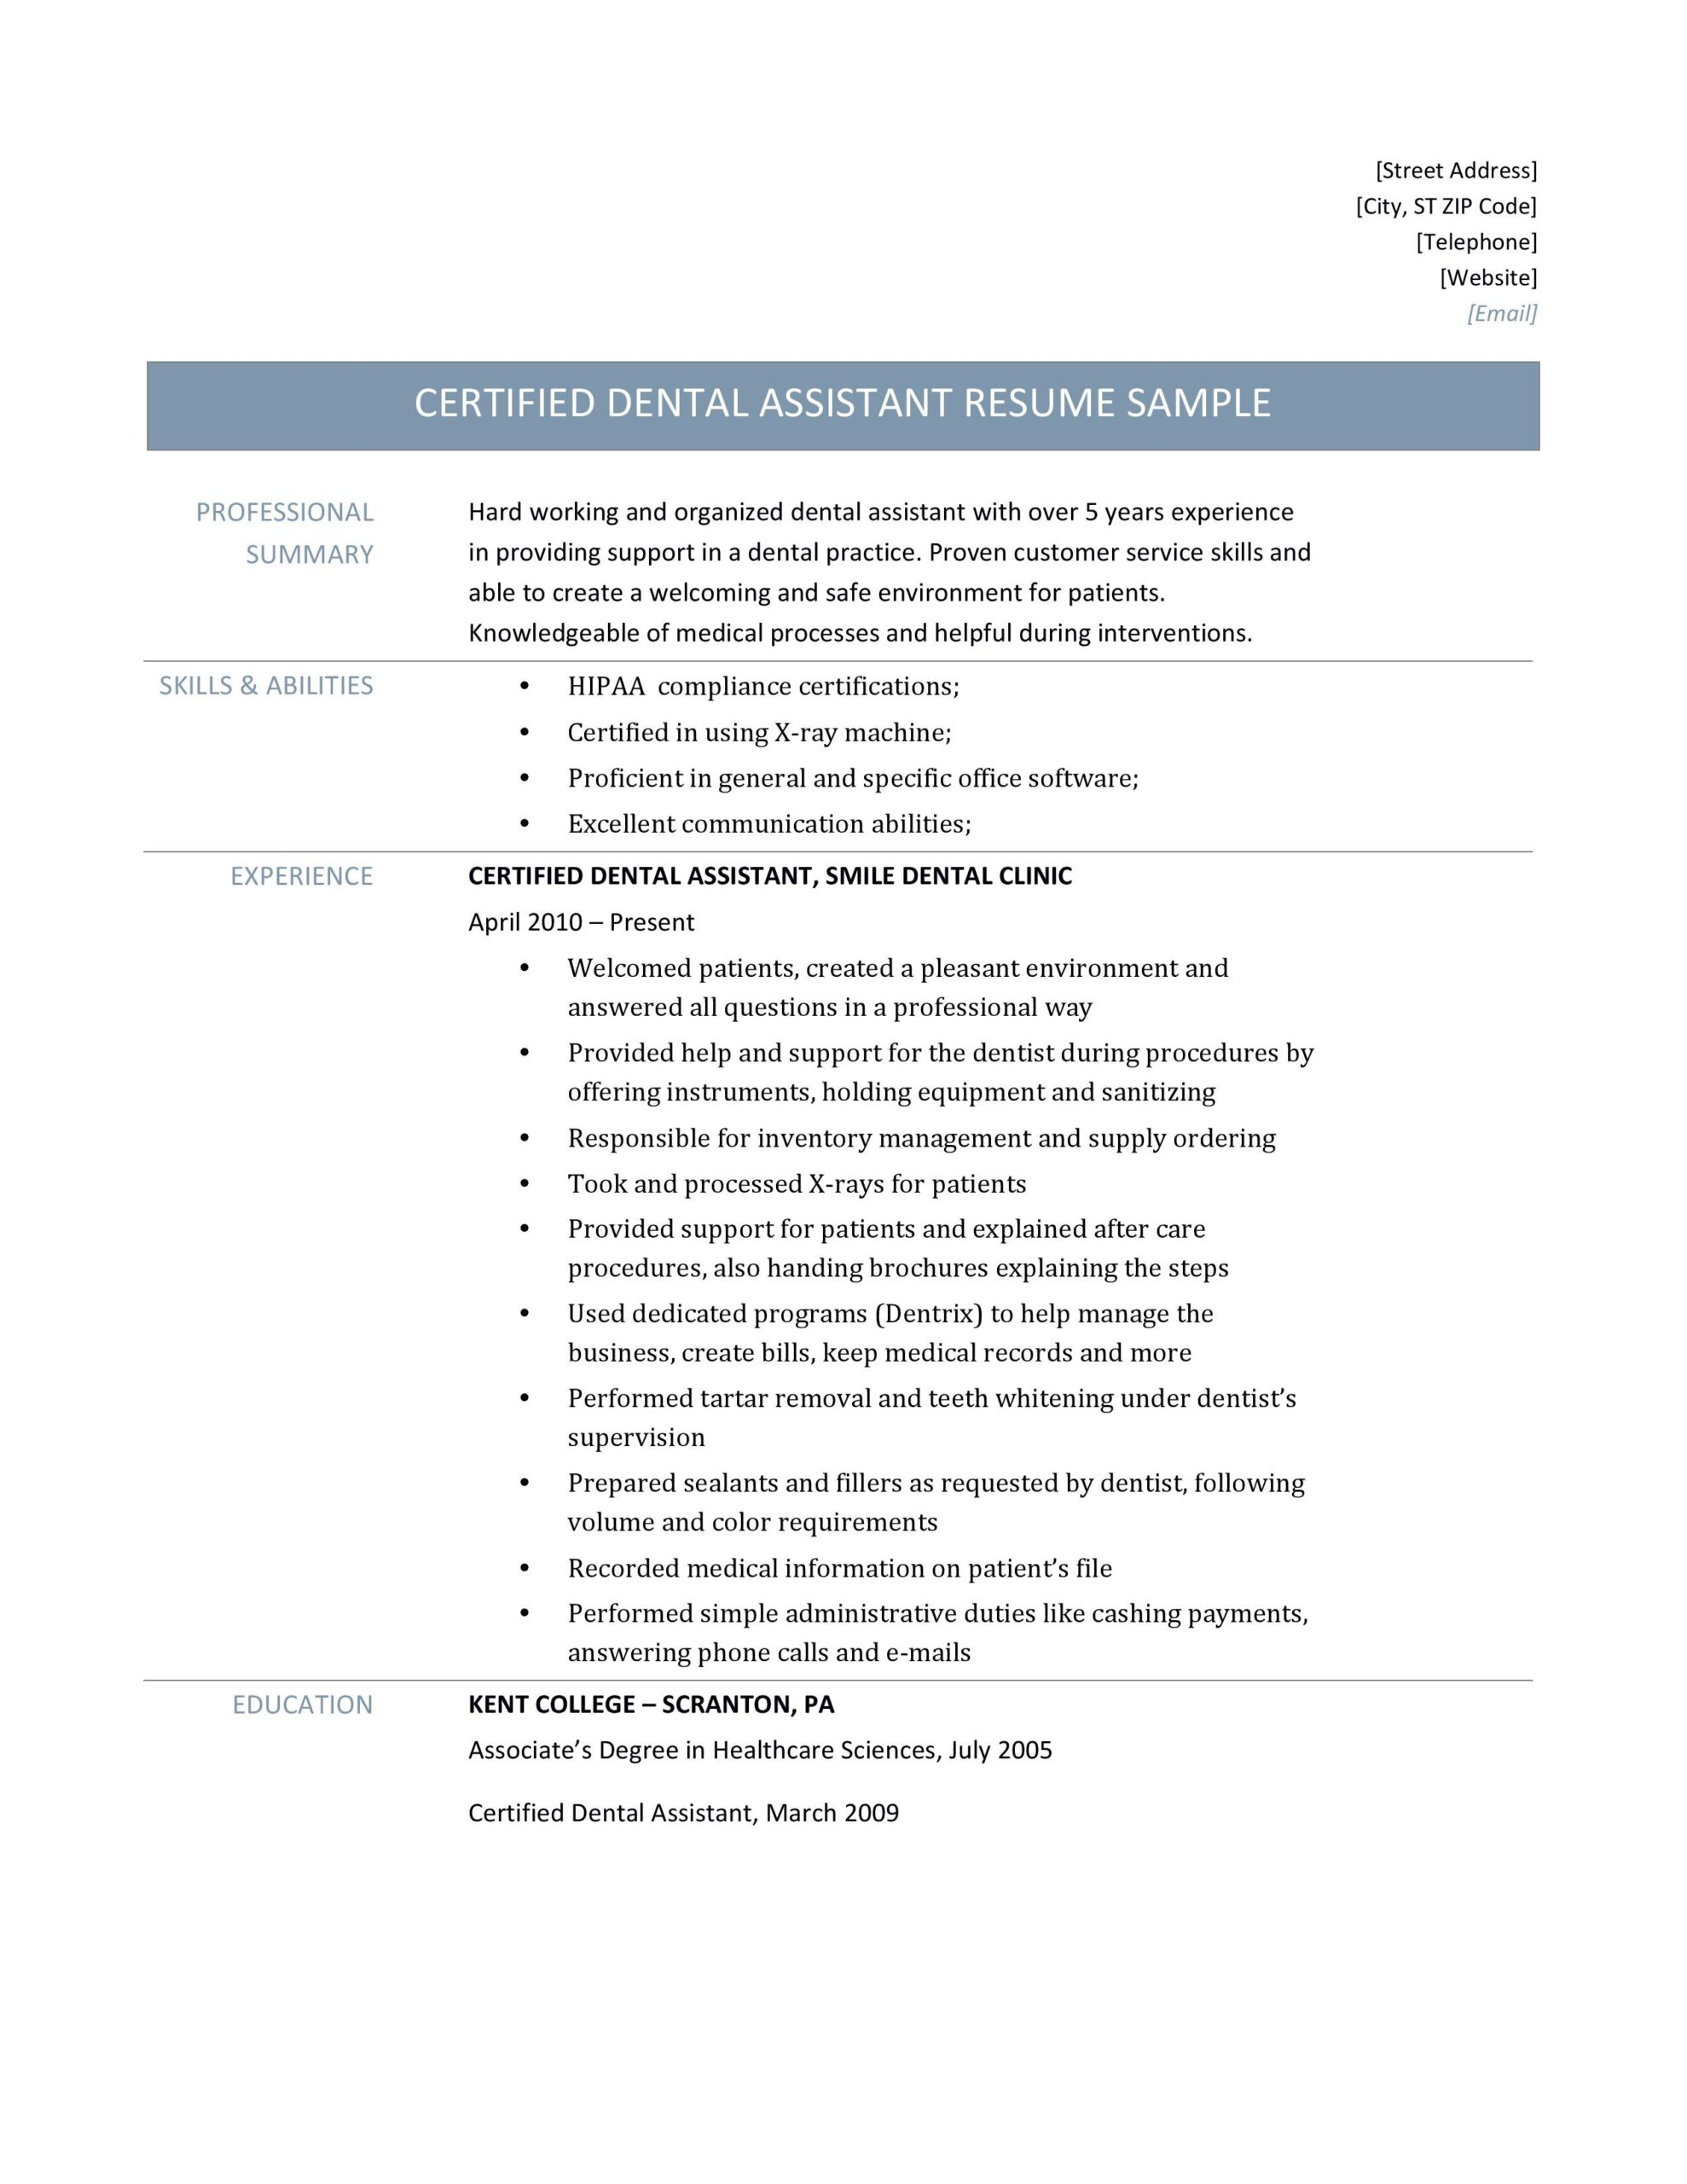 certified dental assistant by resume builders medium skills and abilities for Resume Skills And Abilities For Dental Assistant Resume